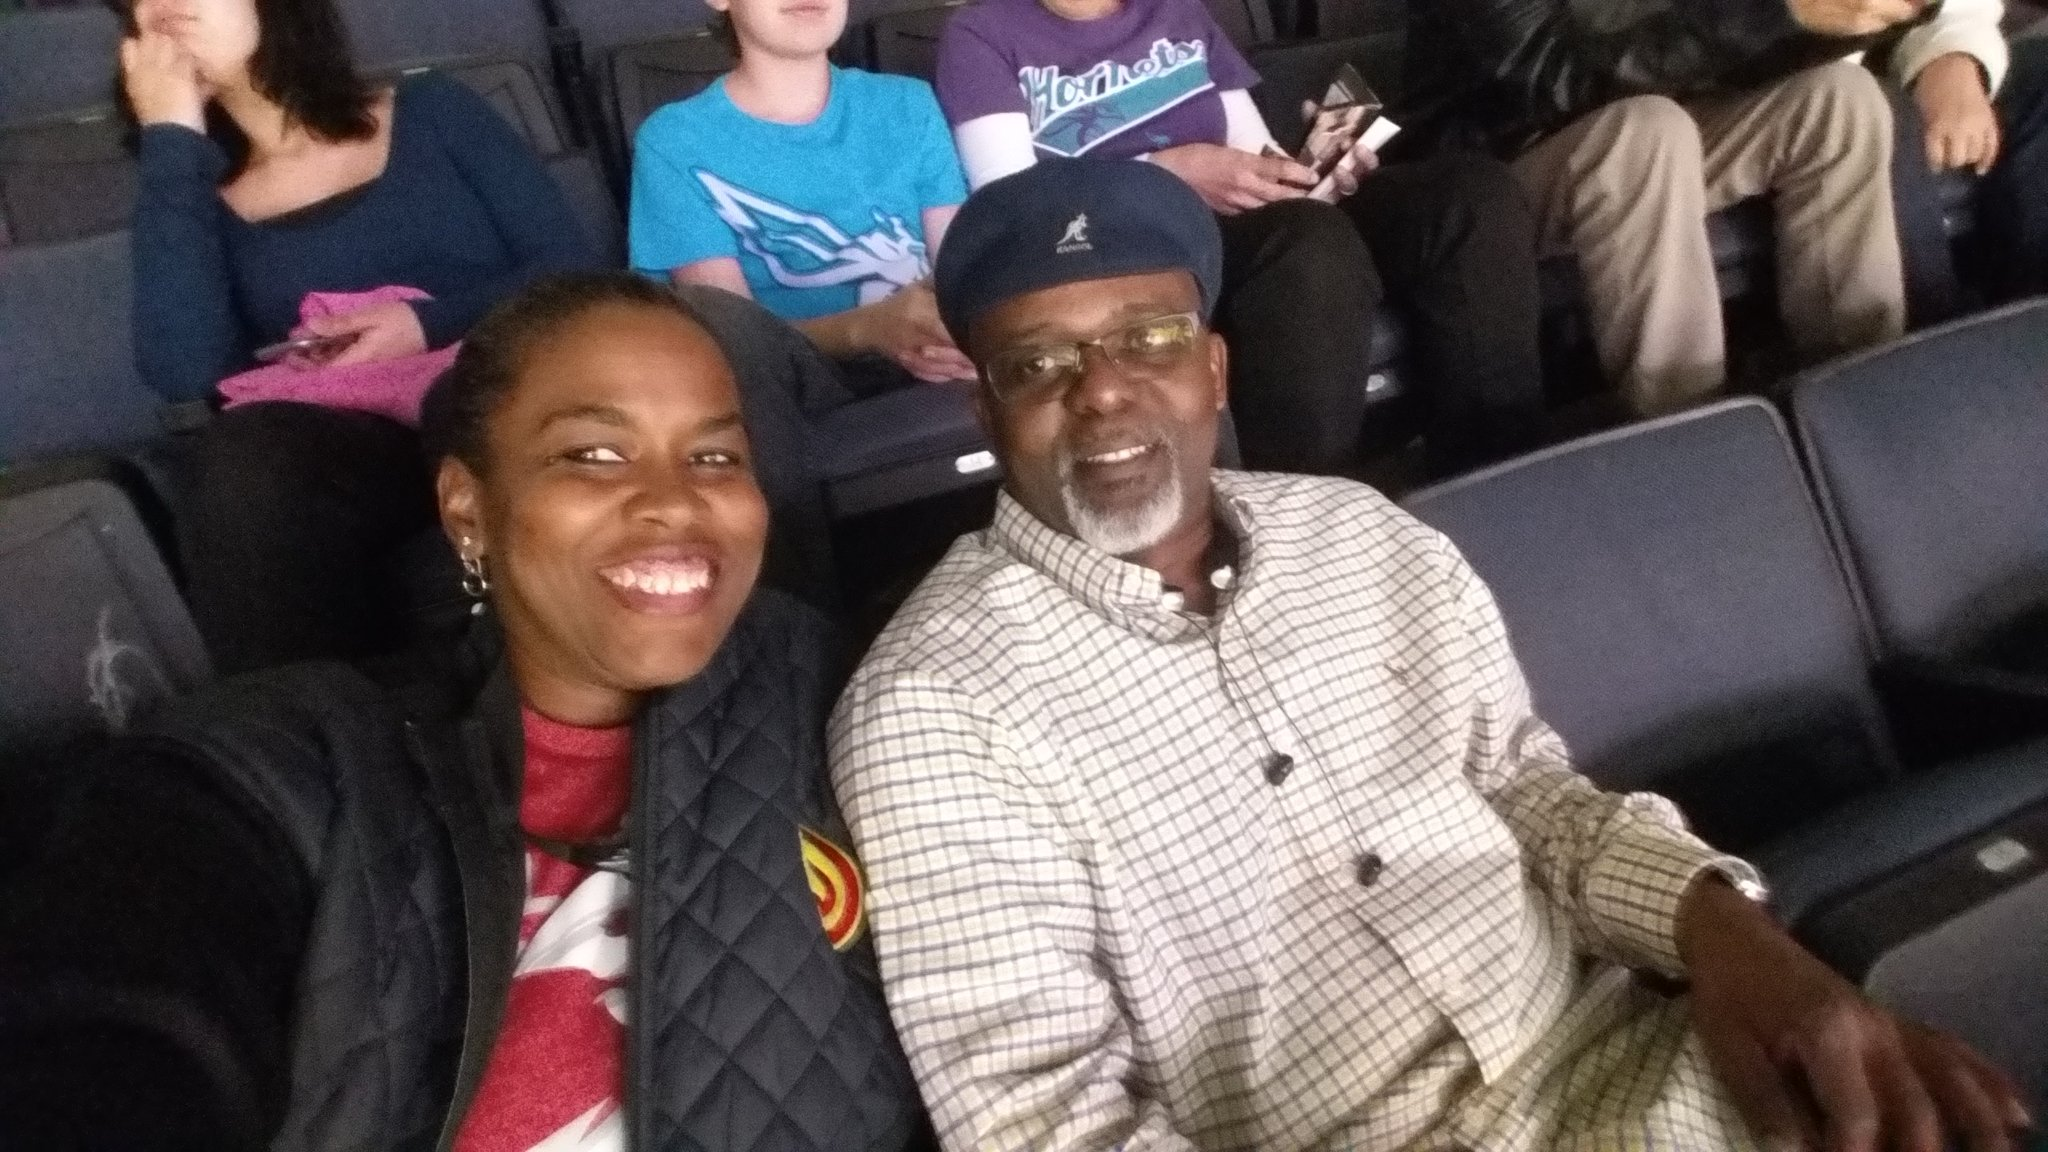 At @ATLHawks with my Panther sidekick @fevadsr  #TrueToAtlanta https://t.co/krUqu8v8Us